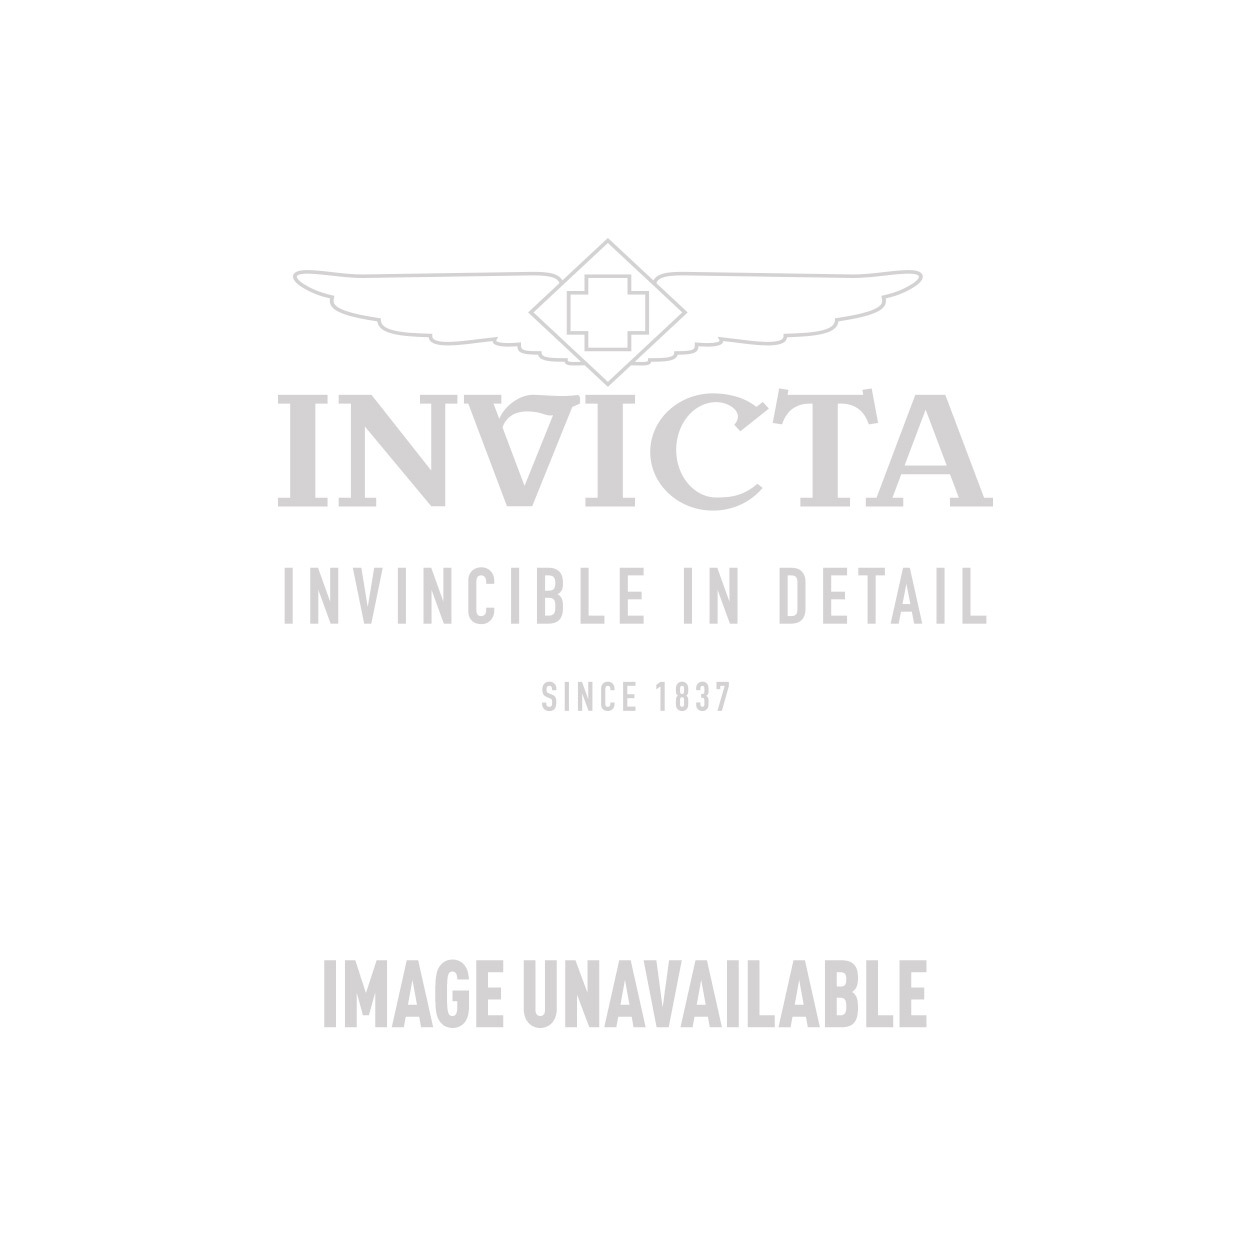 Invicta 21cm Men's Bracelets in Rhodium Aged - Model J0310